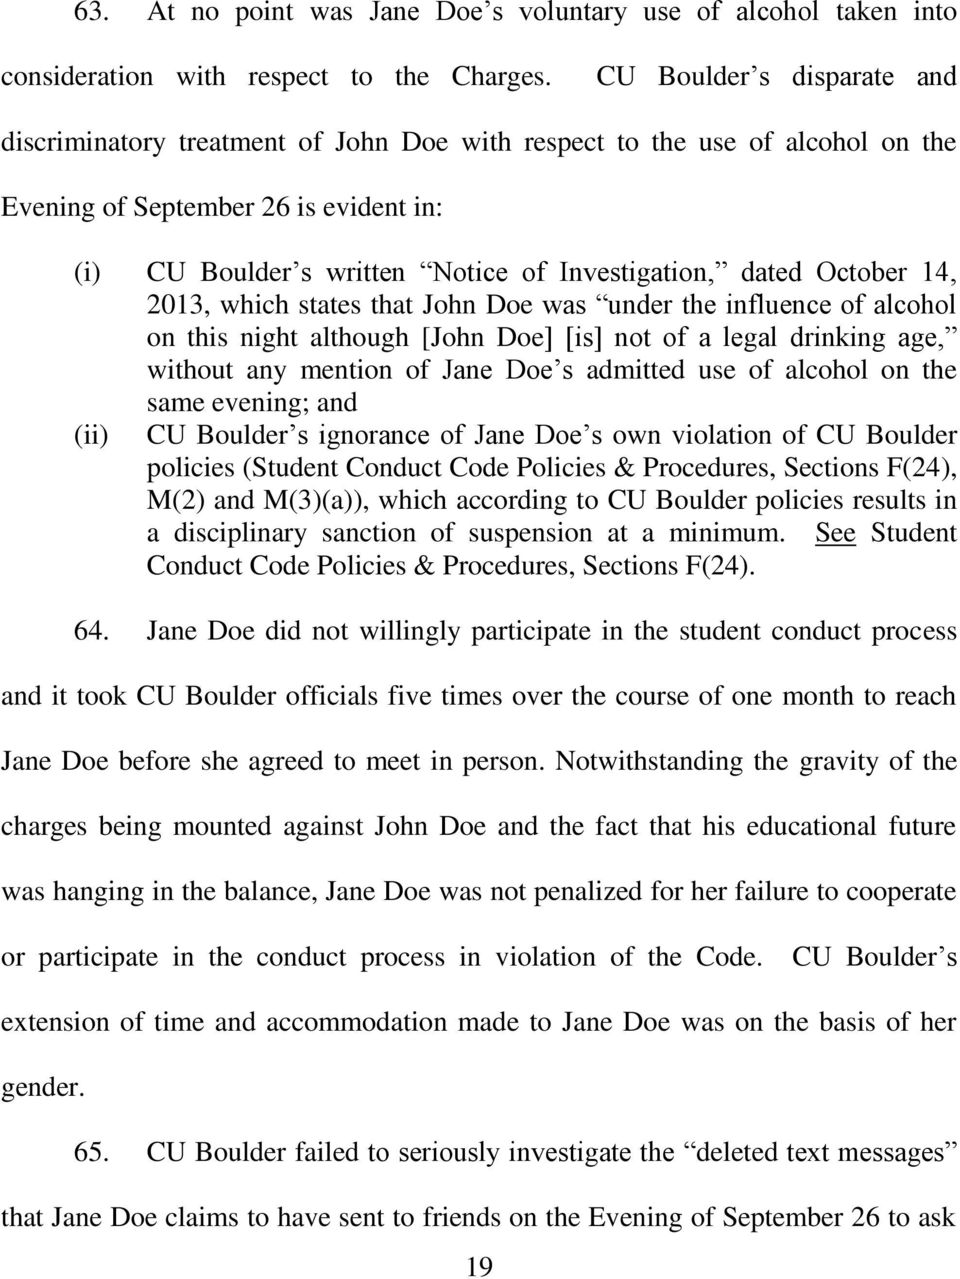 dated October 14, 2013, which states that John Doe was under the influence of alcohol on this night although [John Doe] [is] not of a legal drinking age, without any mention of Jane Doe s admitted